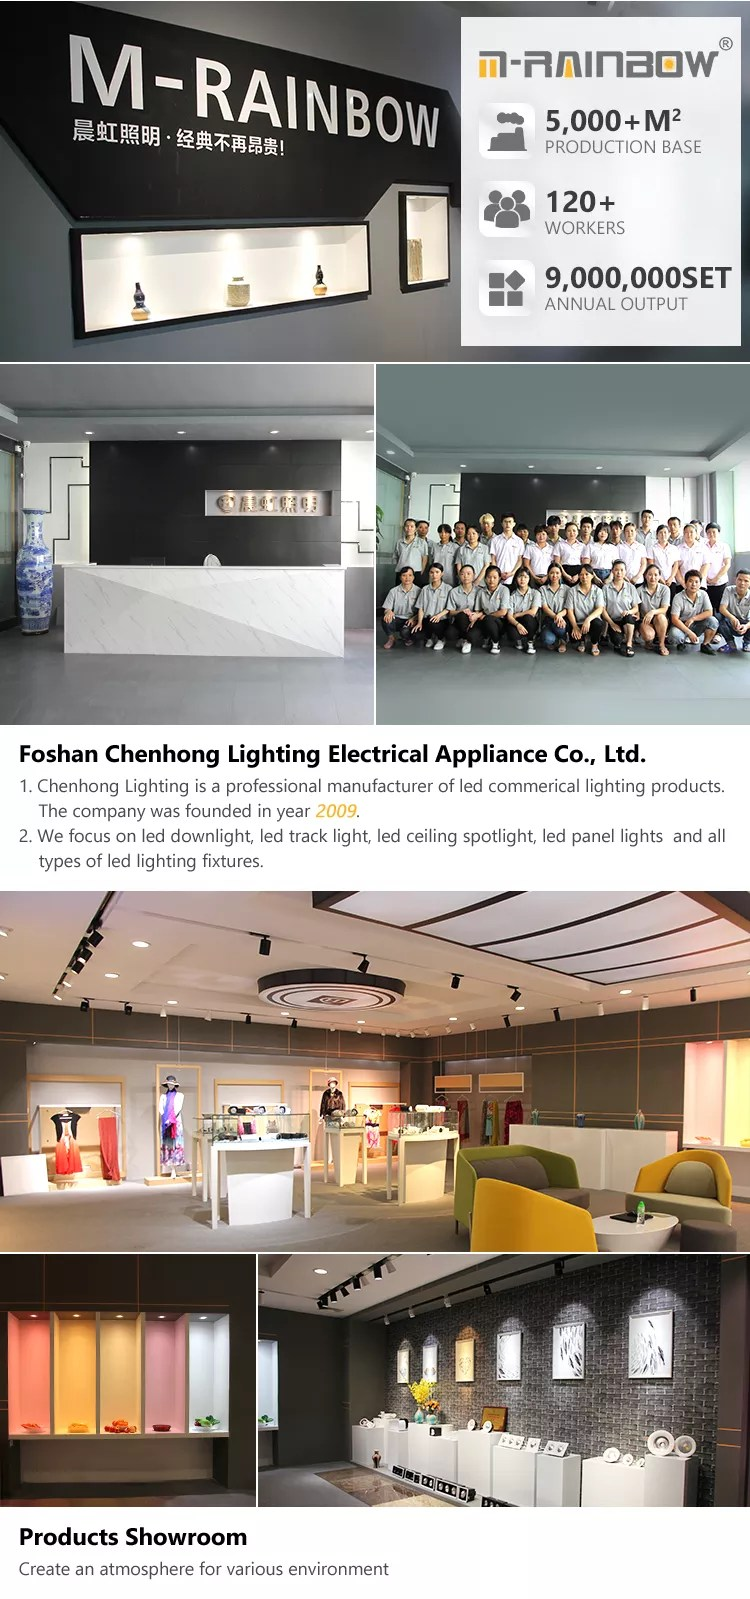 1m 2m 3m white and black track lighting system 3 phase 4 wires led track rail and accessories for track light buy 1m 2m 3m white black 4wires 3